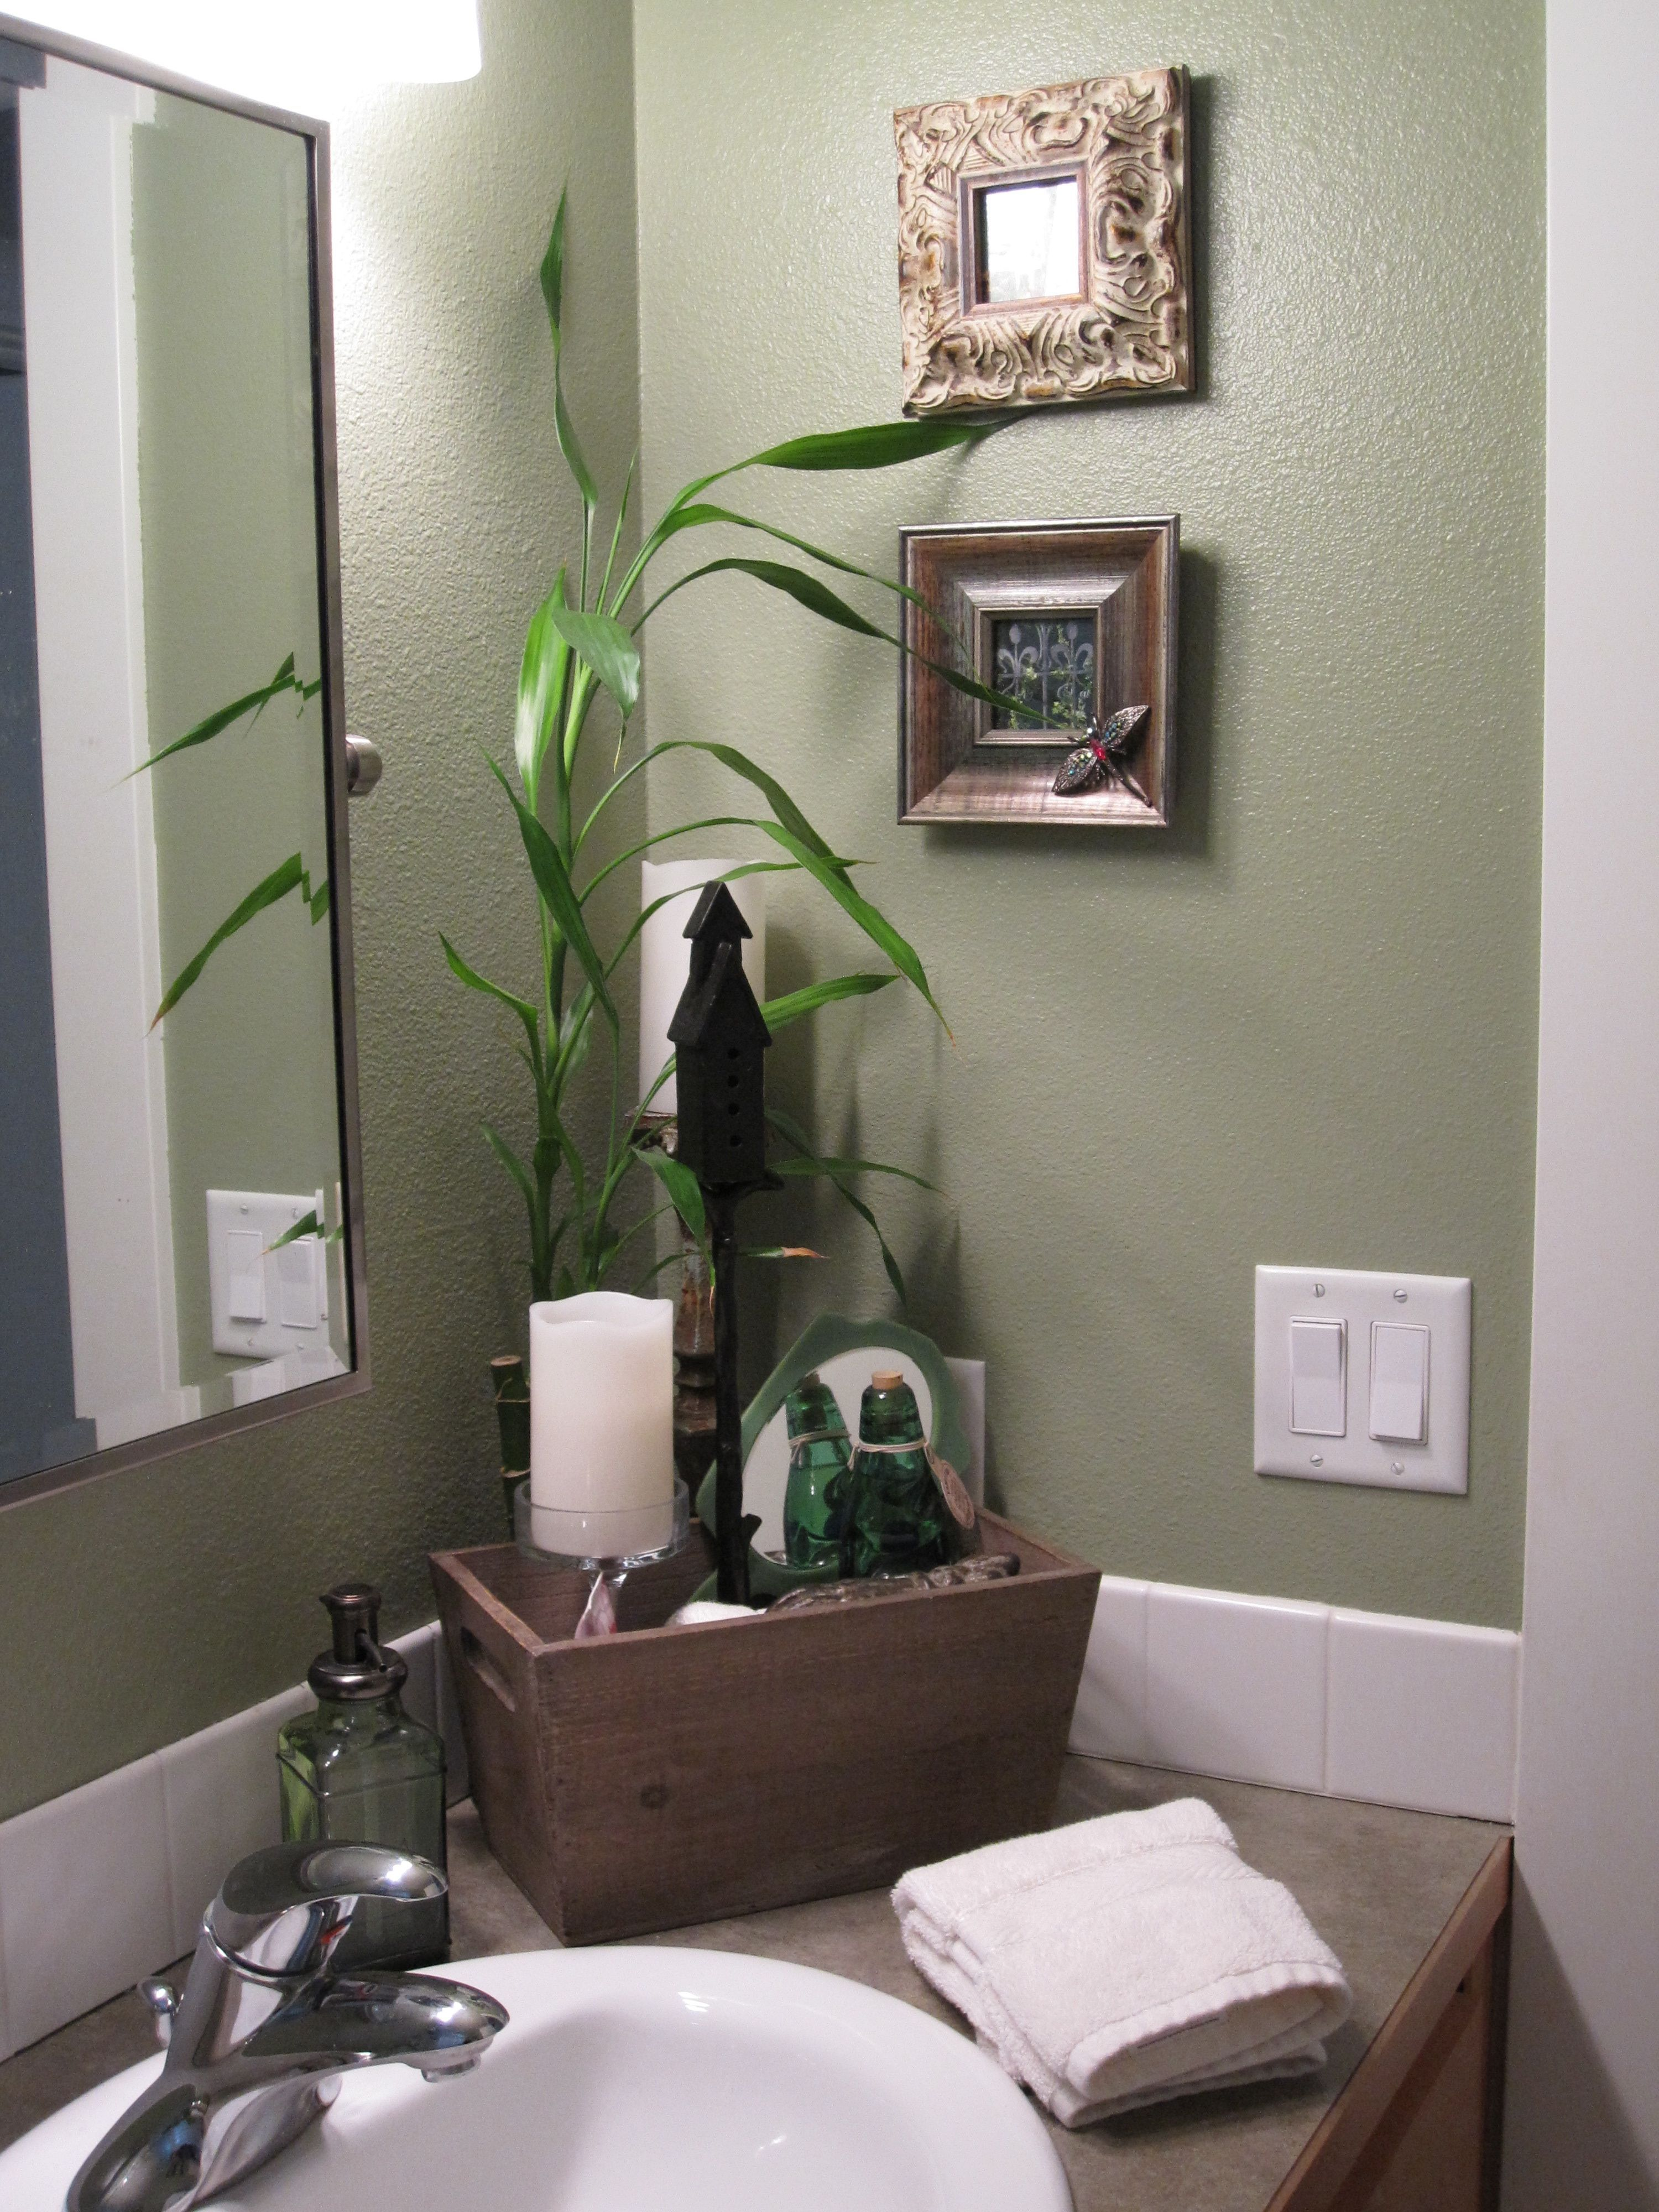 Spa-like feel in the guest bathroom. The fresh green color ...